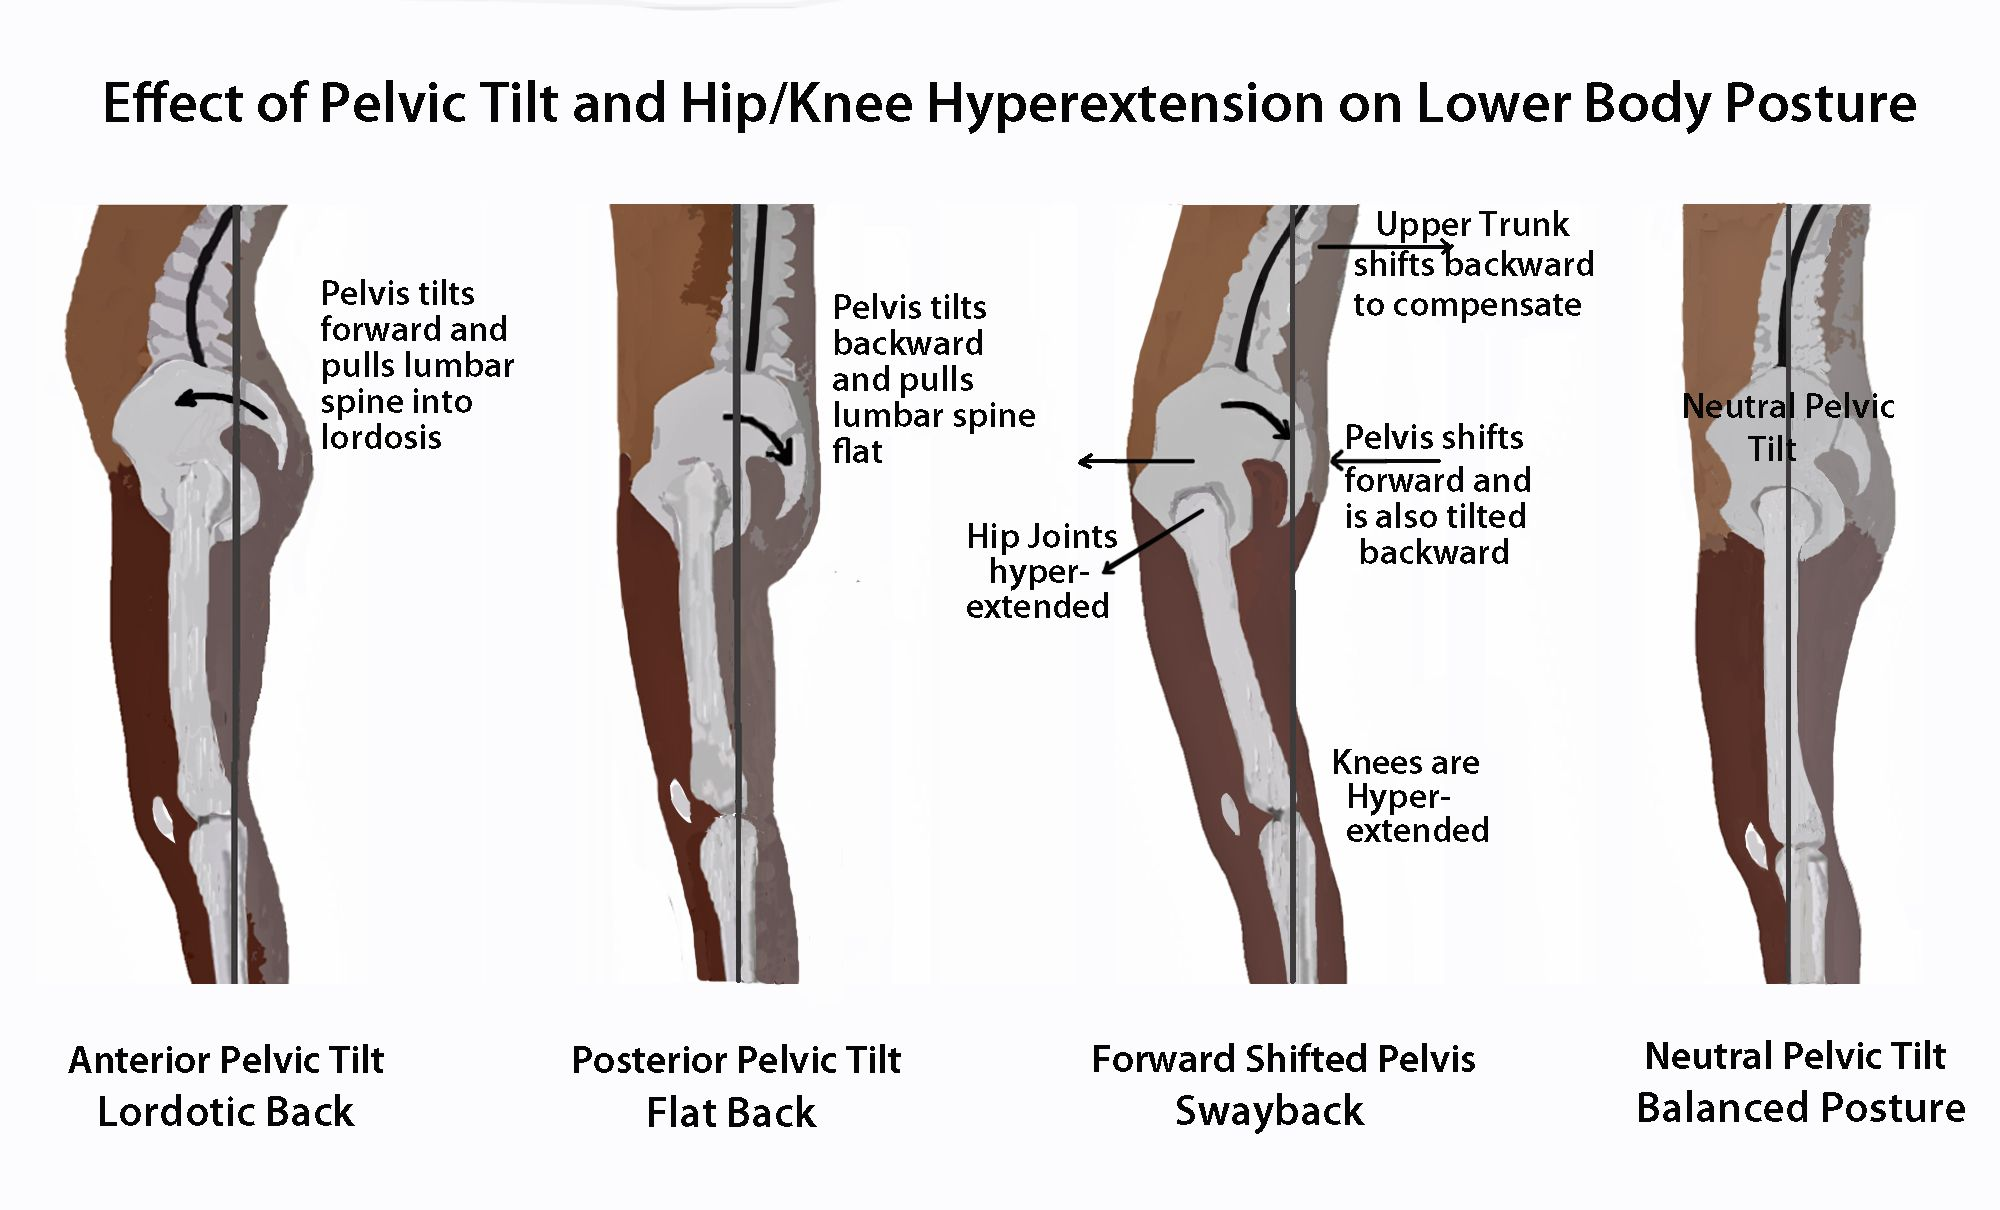 hight resolution of effect of pelvic tilt and hip knee hyperextension on lower body posture